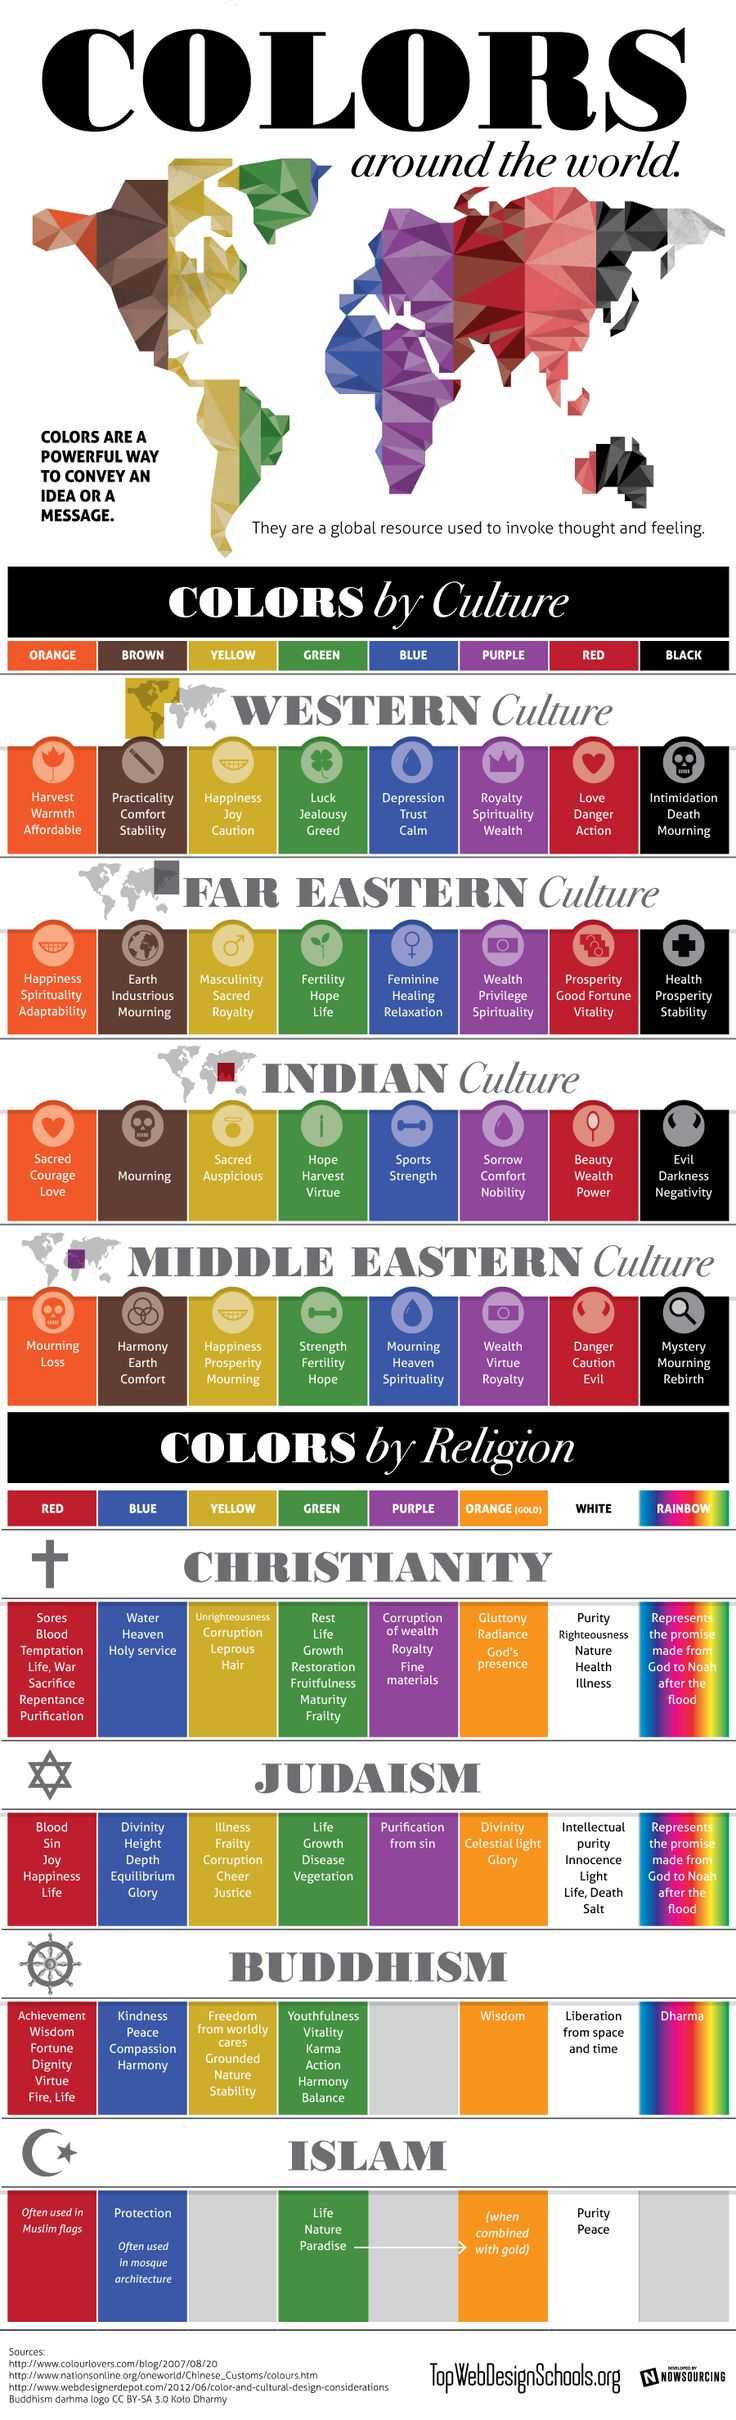 Colors Around The World By Culture  Ahh! Perfect program idea for diversity! :)